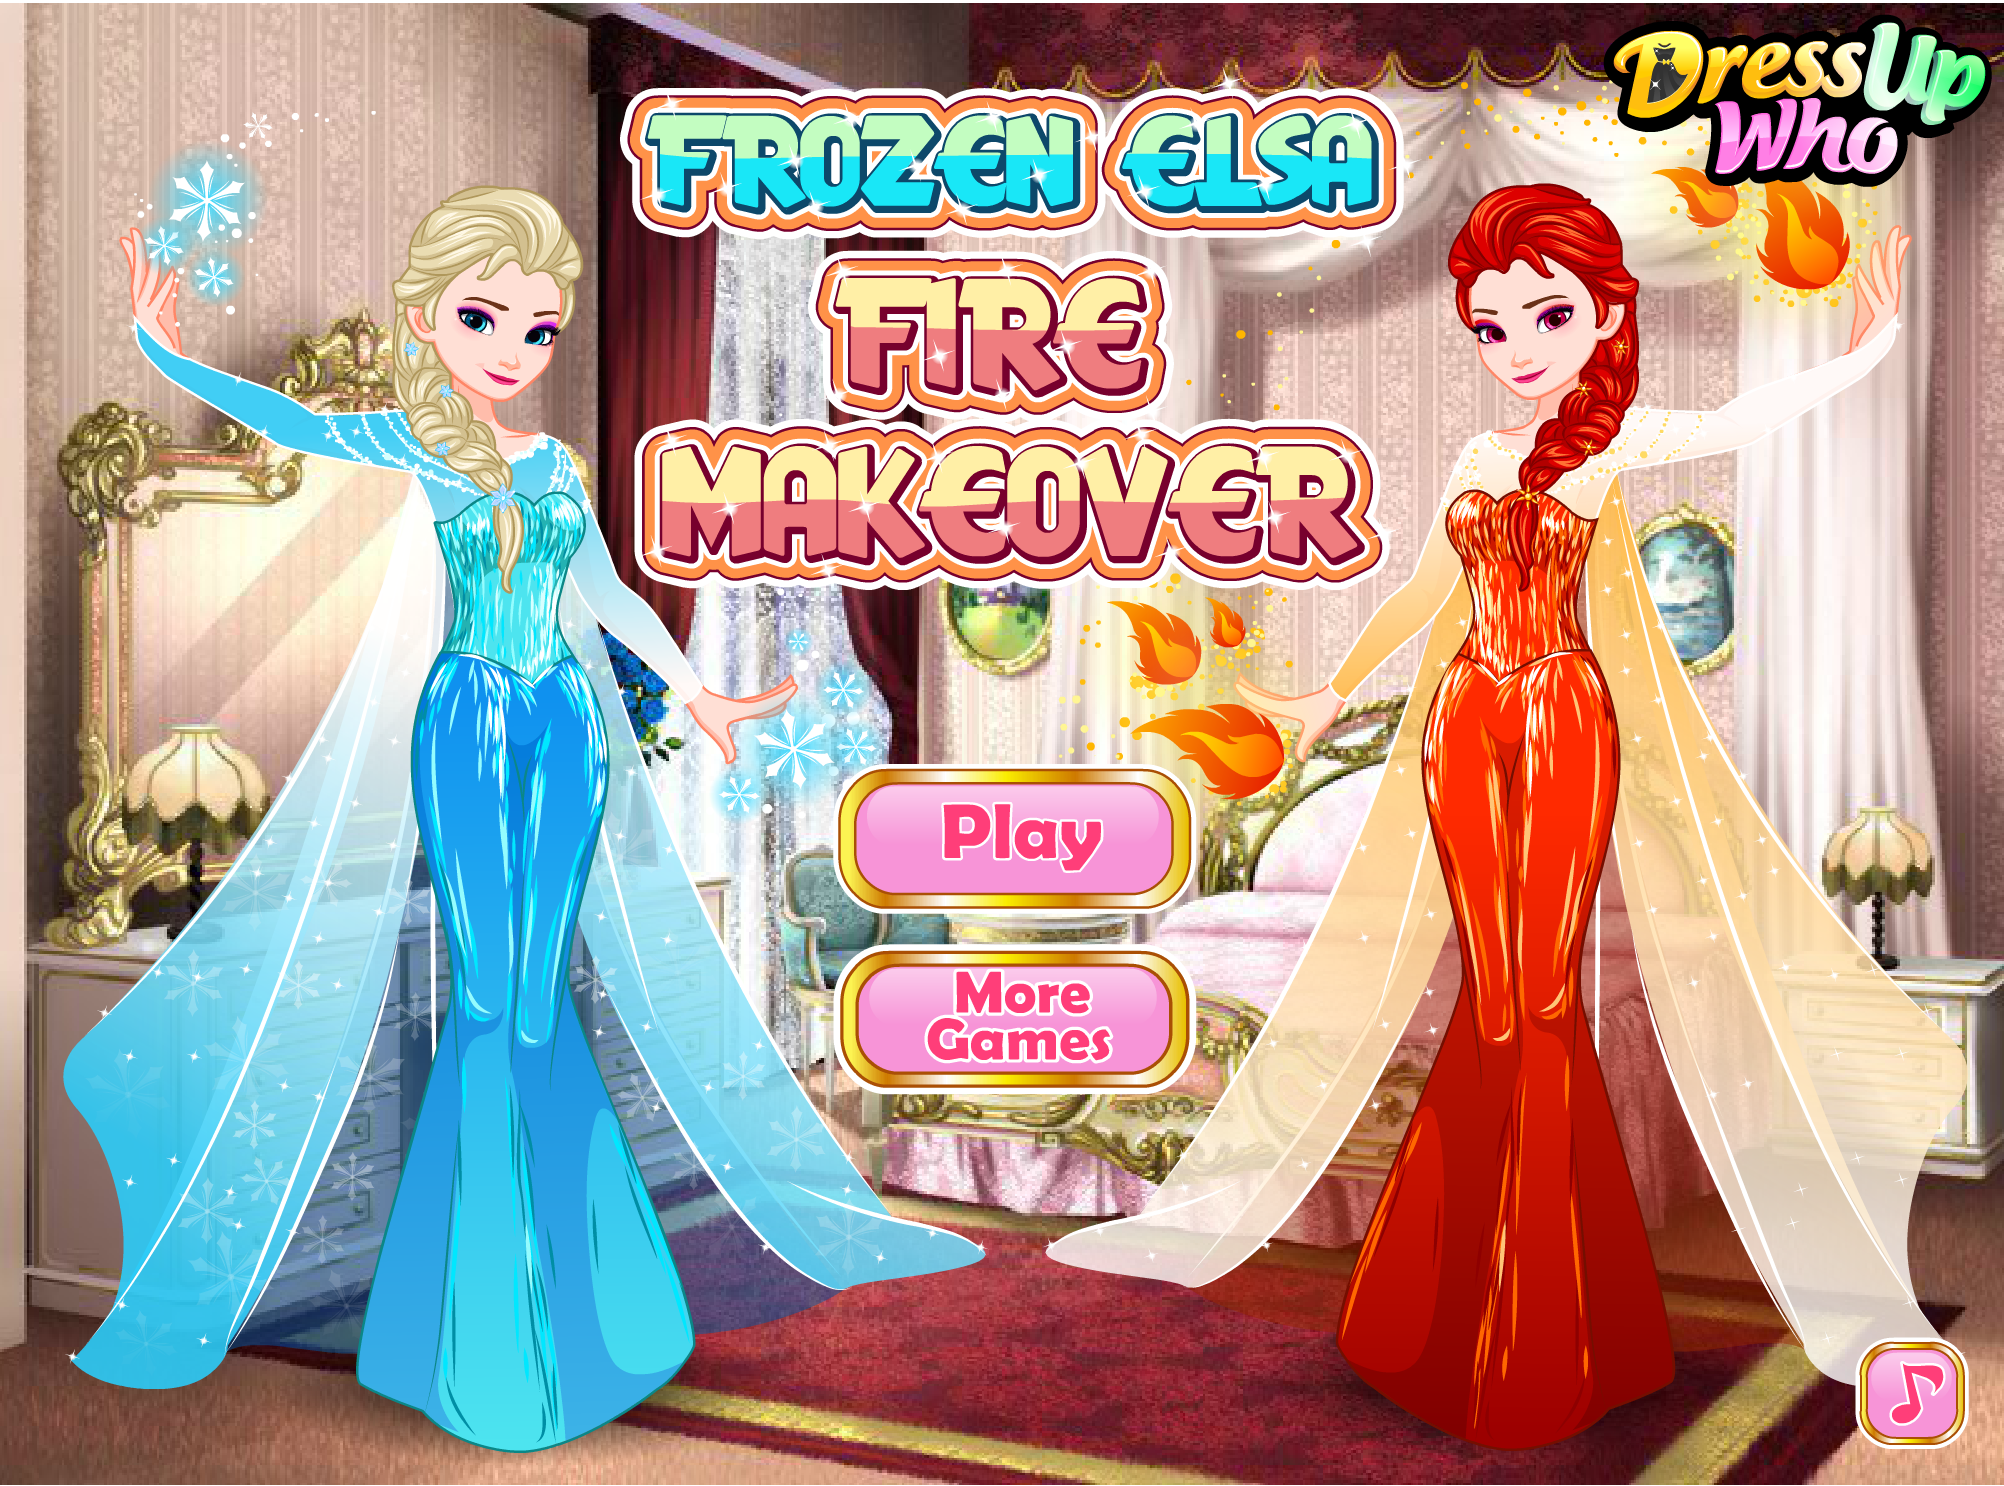 Frozen Elsa Fire Makeover! #disney #princess #snow #queen #elsa #makeup #dressup #game